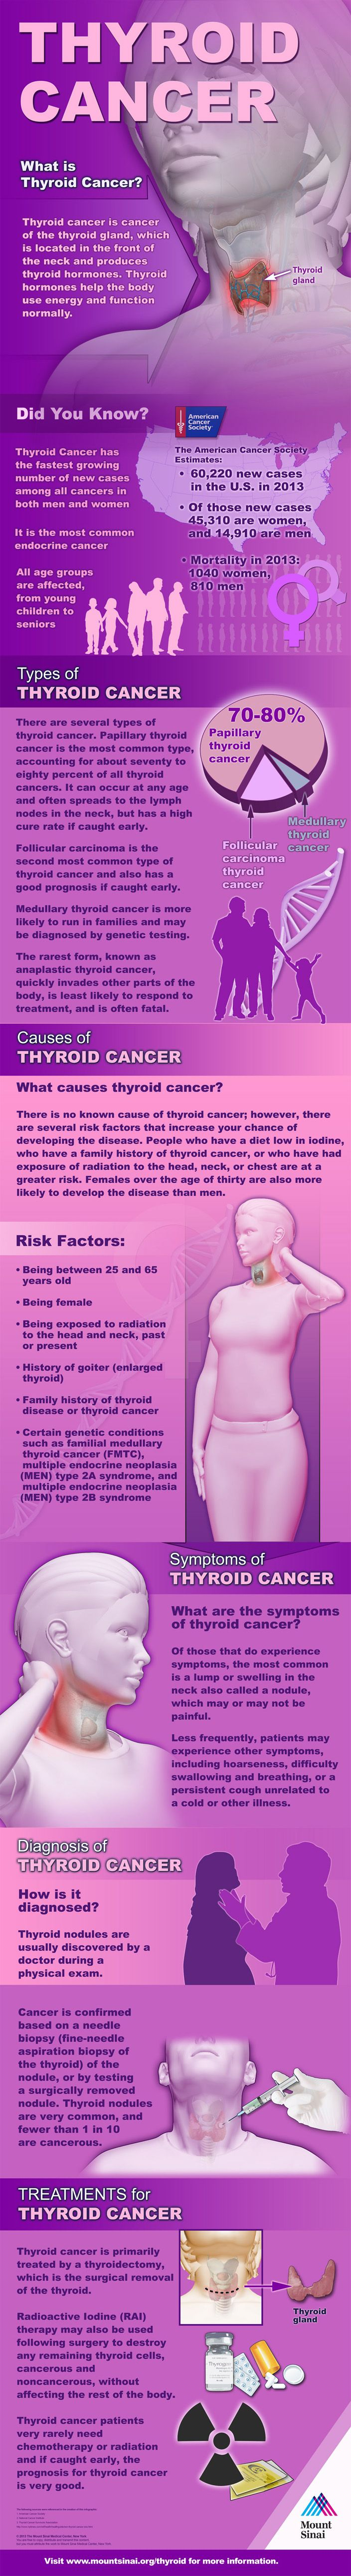 More than 60,200 new cases of thyroid cancer are diagnosed each year in the U.S. Discover facts, risk factors, symptoms and treatments for this common endocrine cancer.